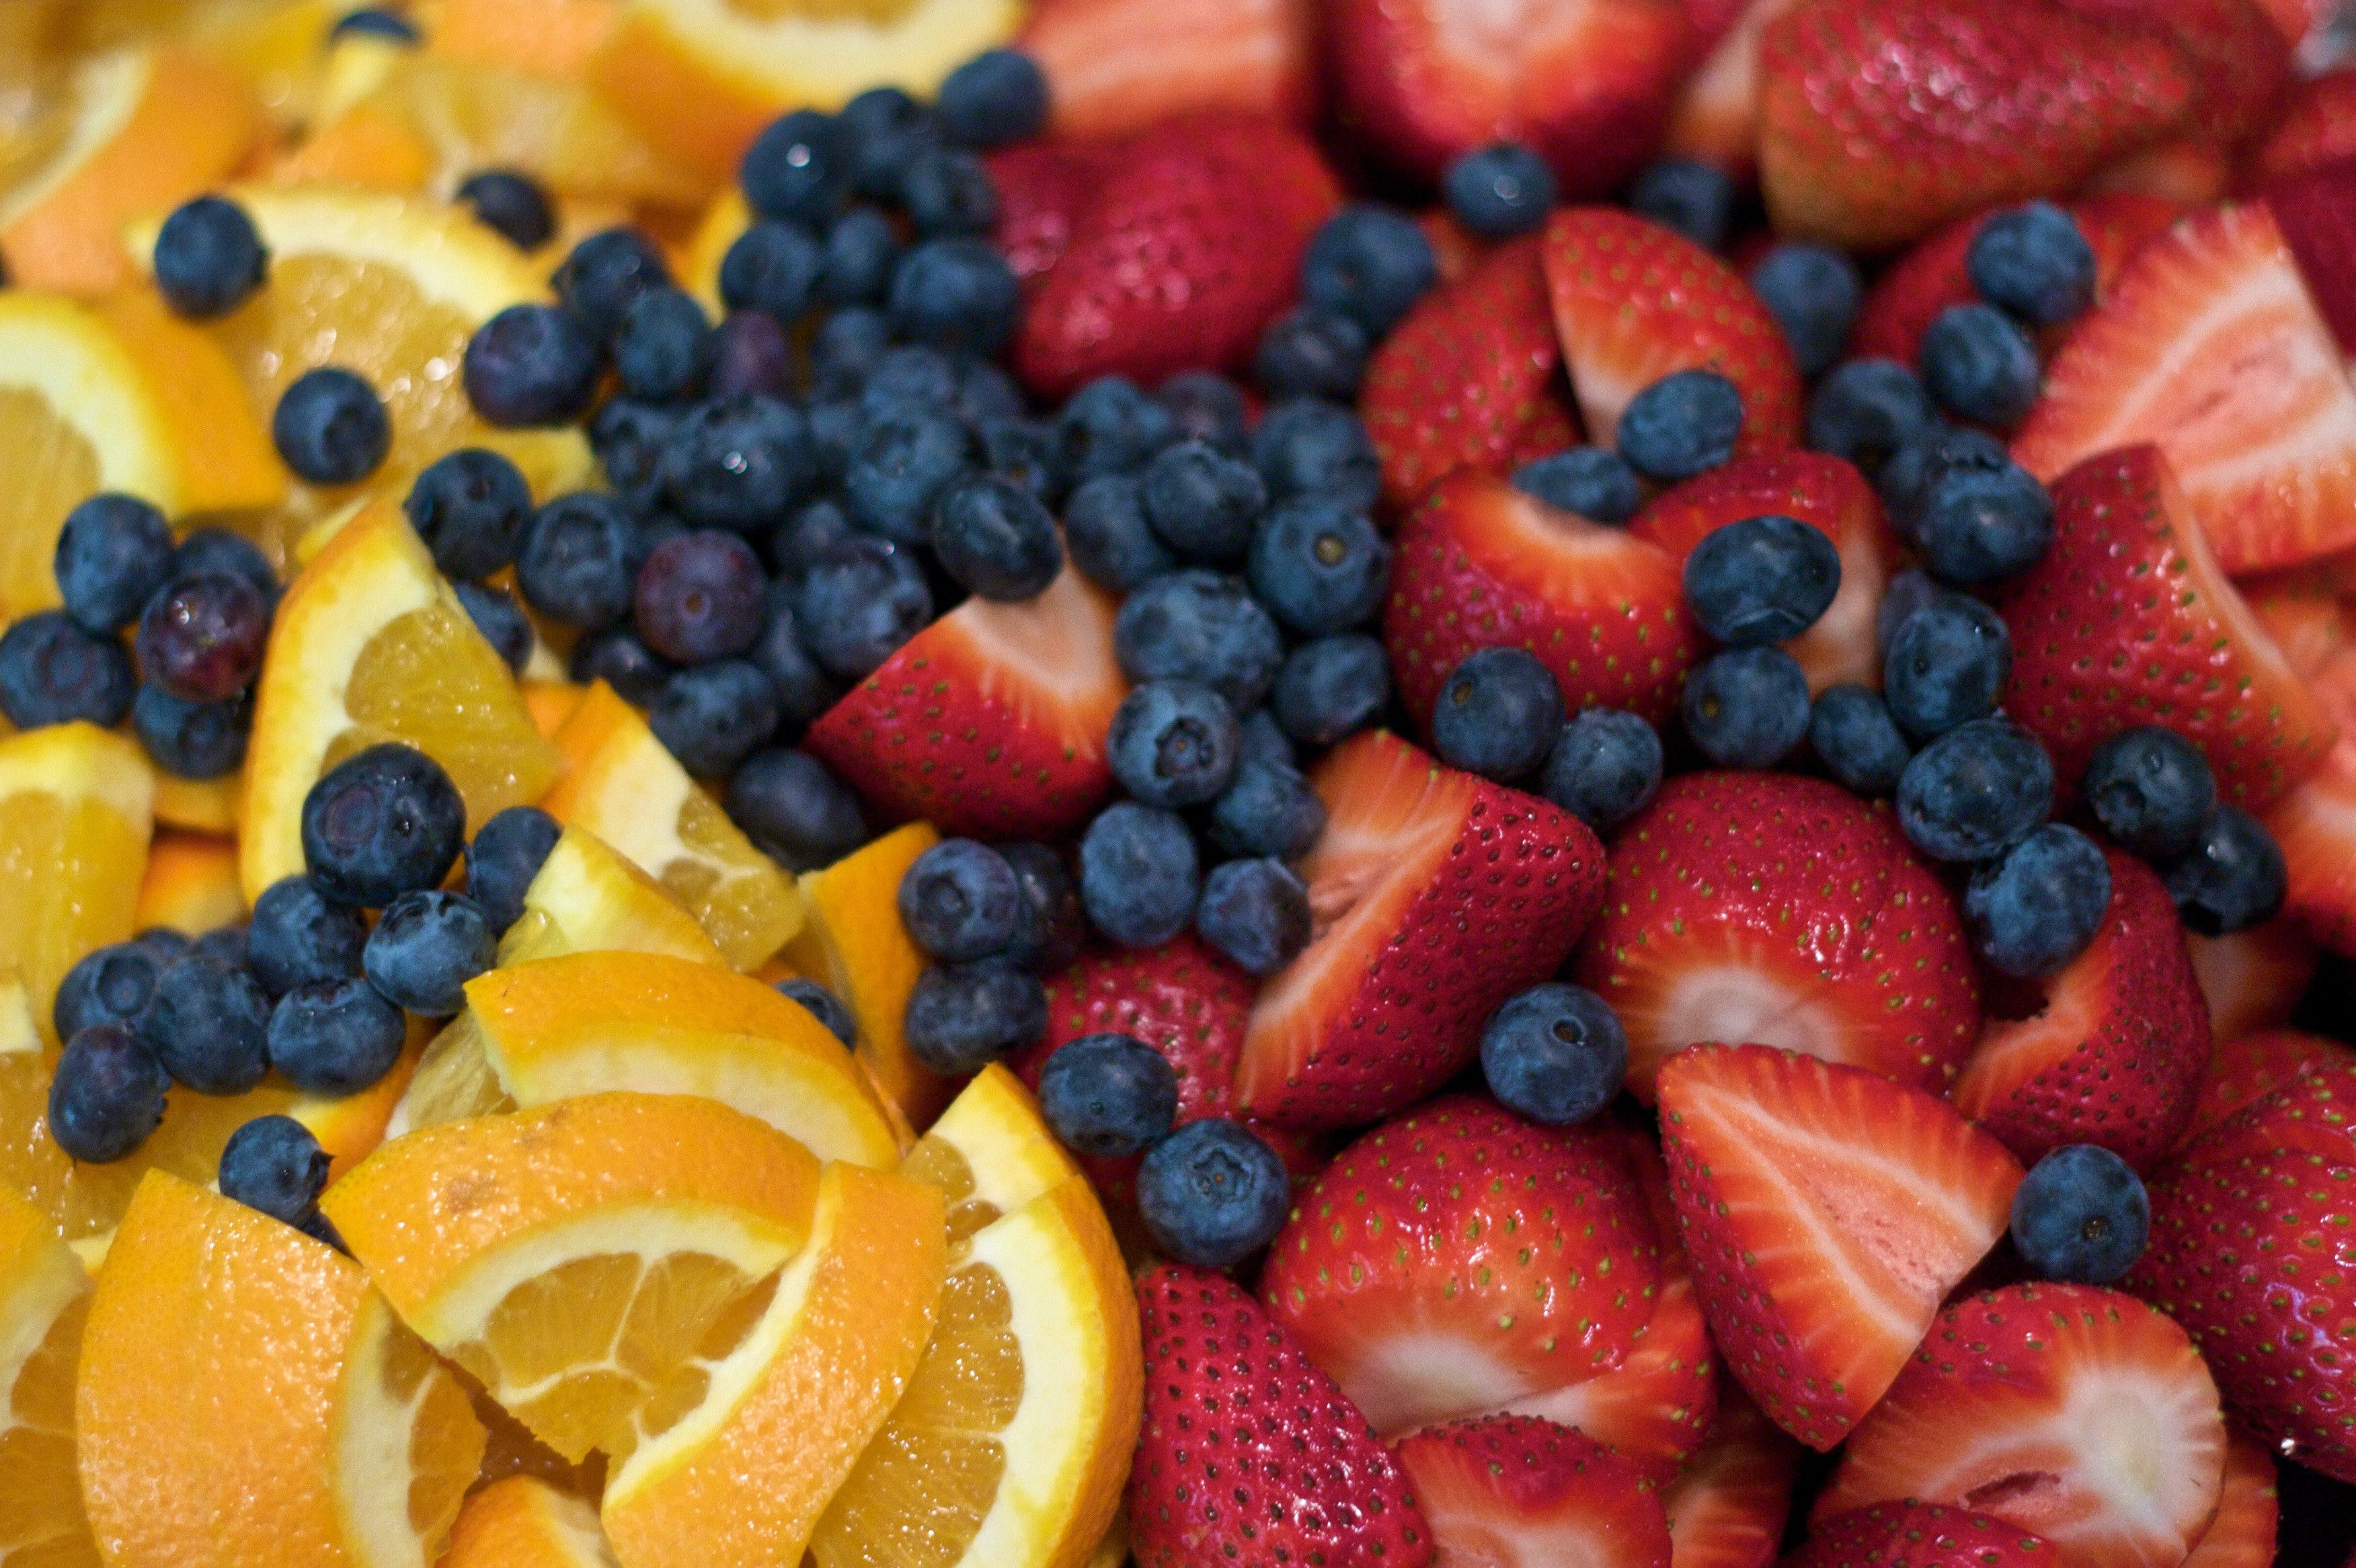 A combination of orange slices, blueberries, and strawberries.